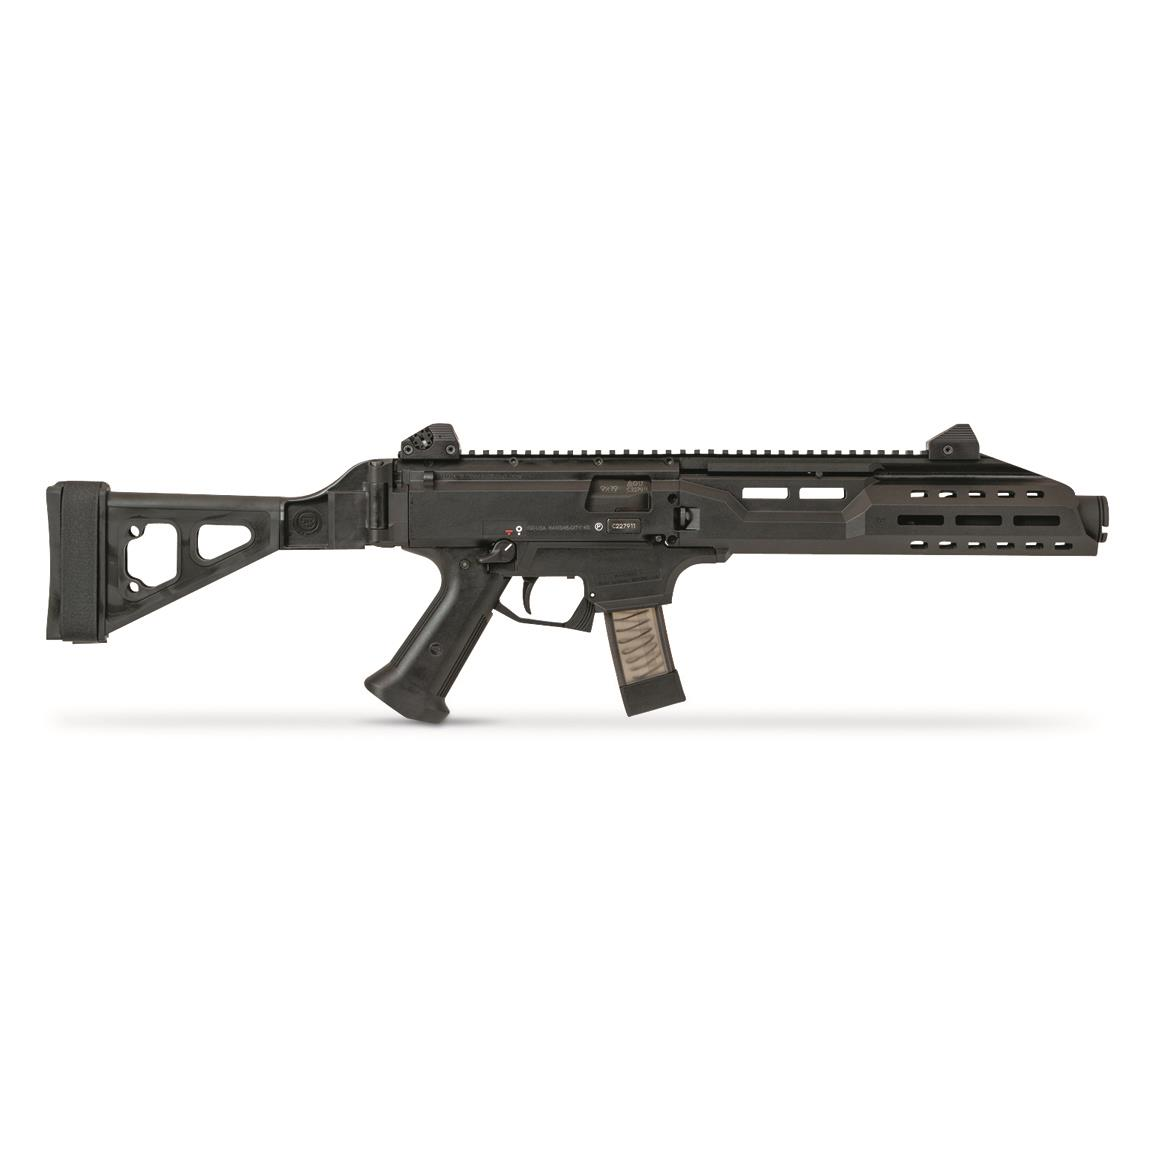 "CZ-USA Scorpion EVO 3 S1 with Flash Can and Fold. Brace, Semi-Automatic, 9mm, 7.72"" Barrel, 20+1"